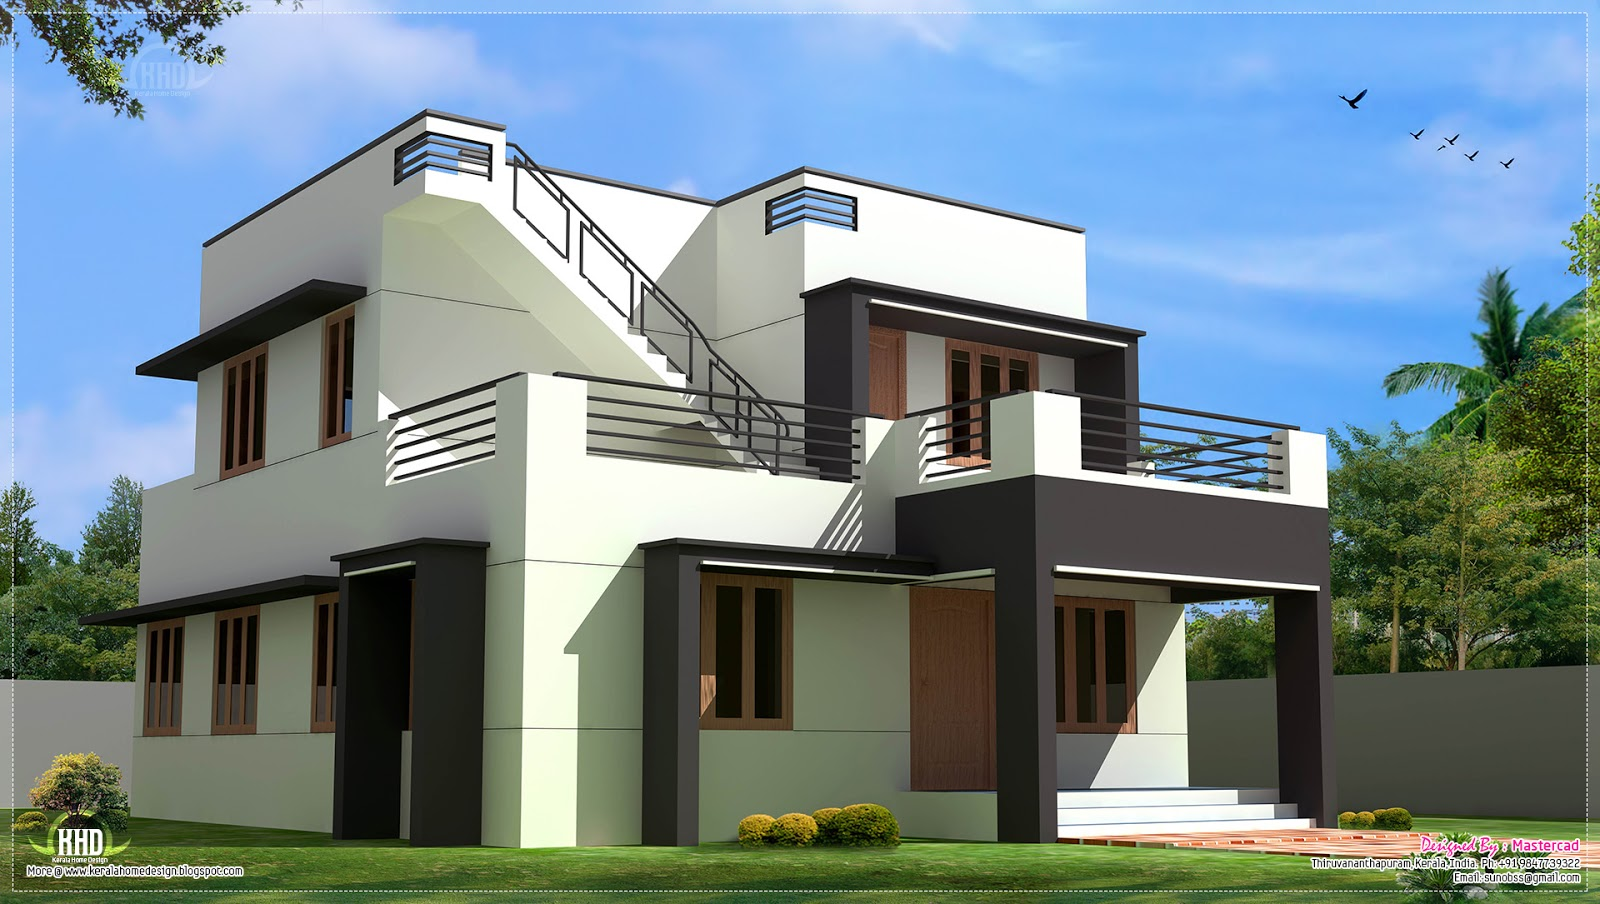 modern home simple contemporary style villa plan kerala home design and floor,New Contemporary House Plans